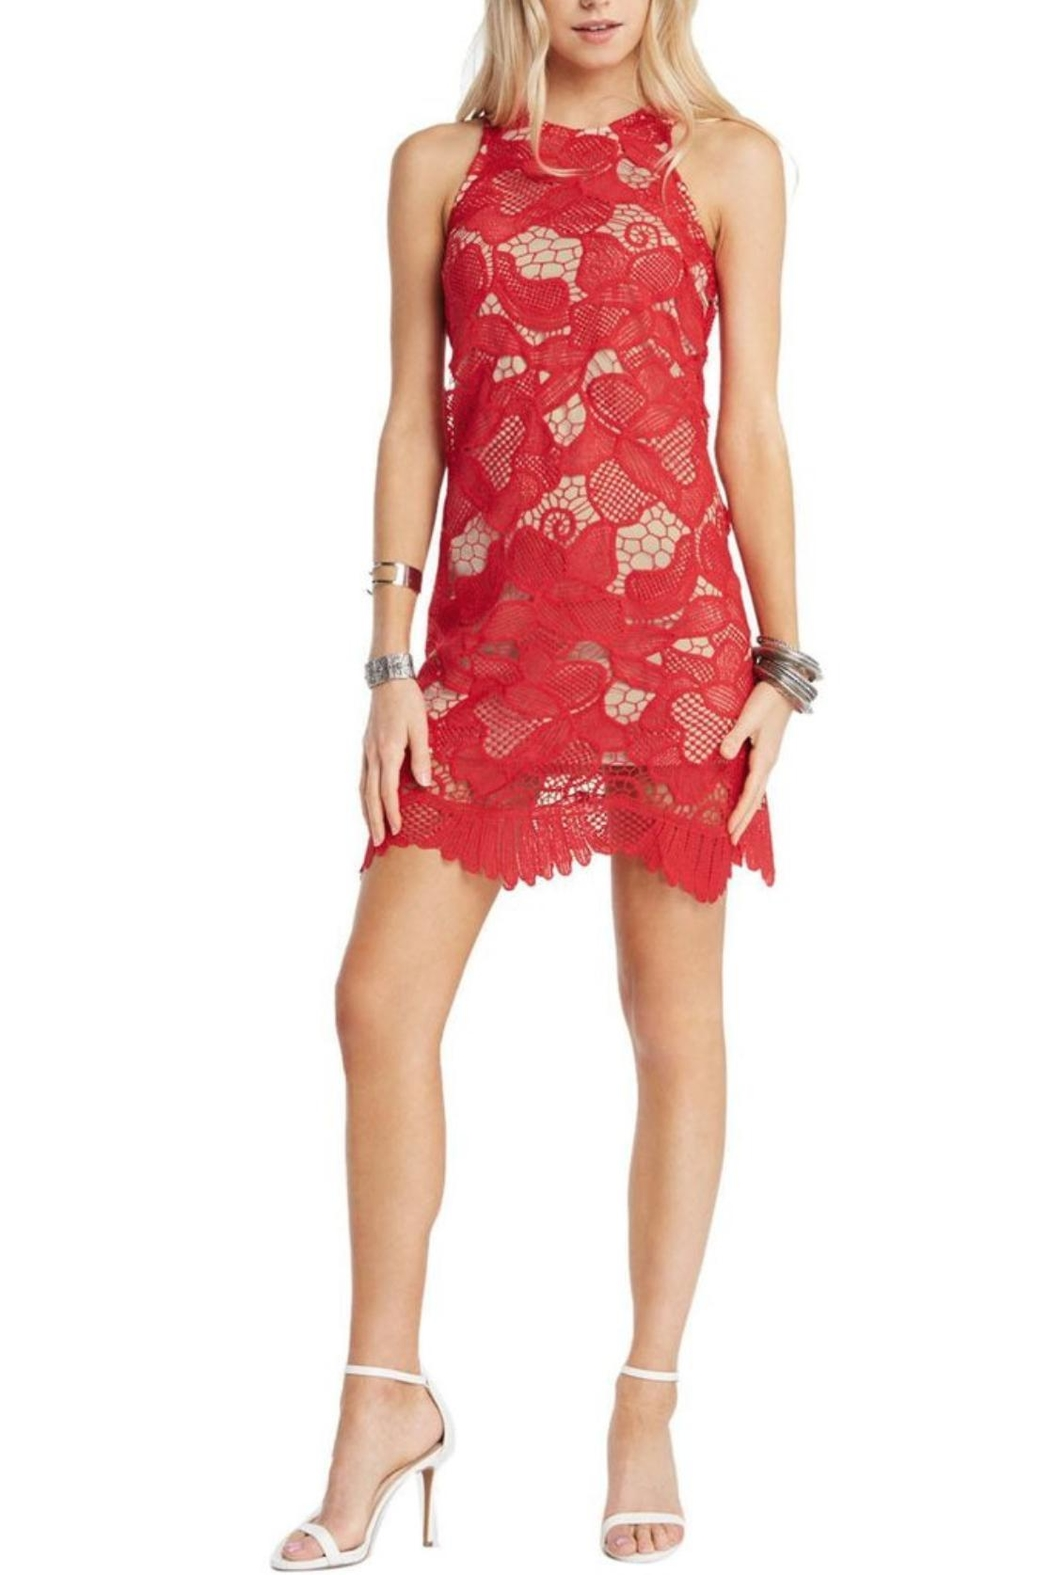 Soprano Red Lace Overlay Dress - Main Image